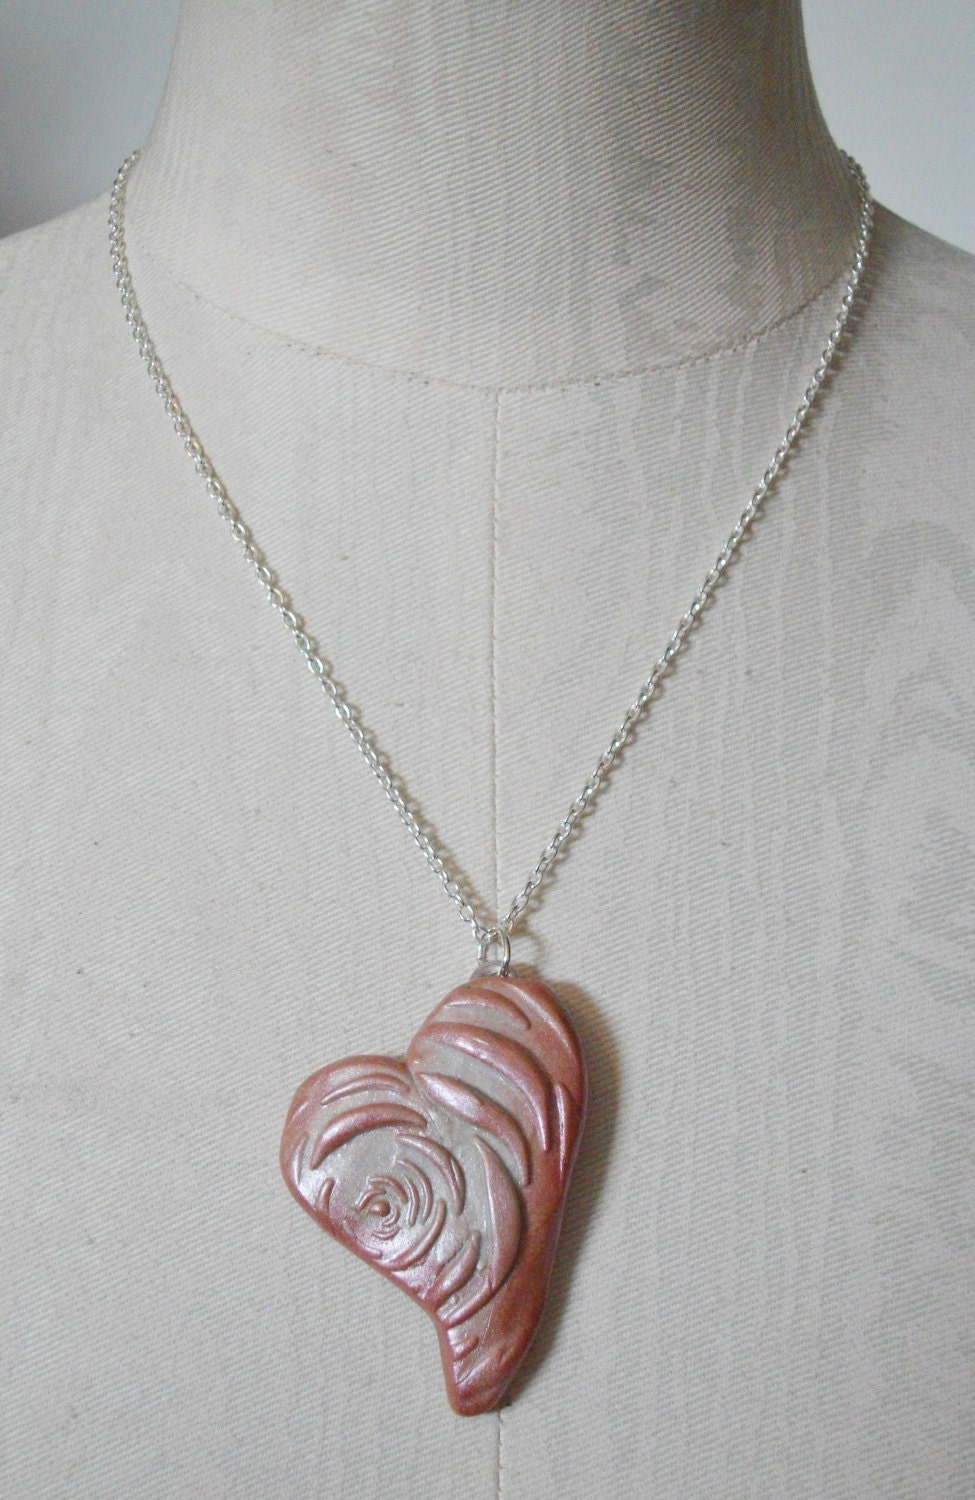 Handcrafted necklace 'Rosie Impression' featuring a sculpted pink and pearly metallic burnished heart. steampunk buy now online